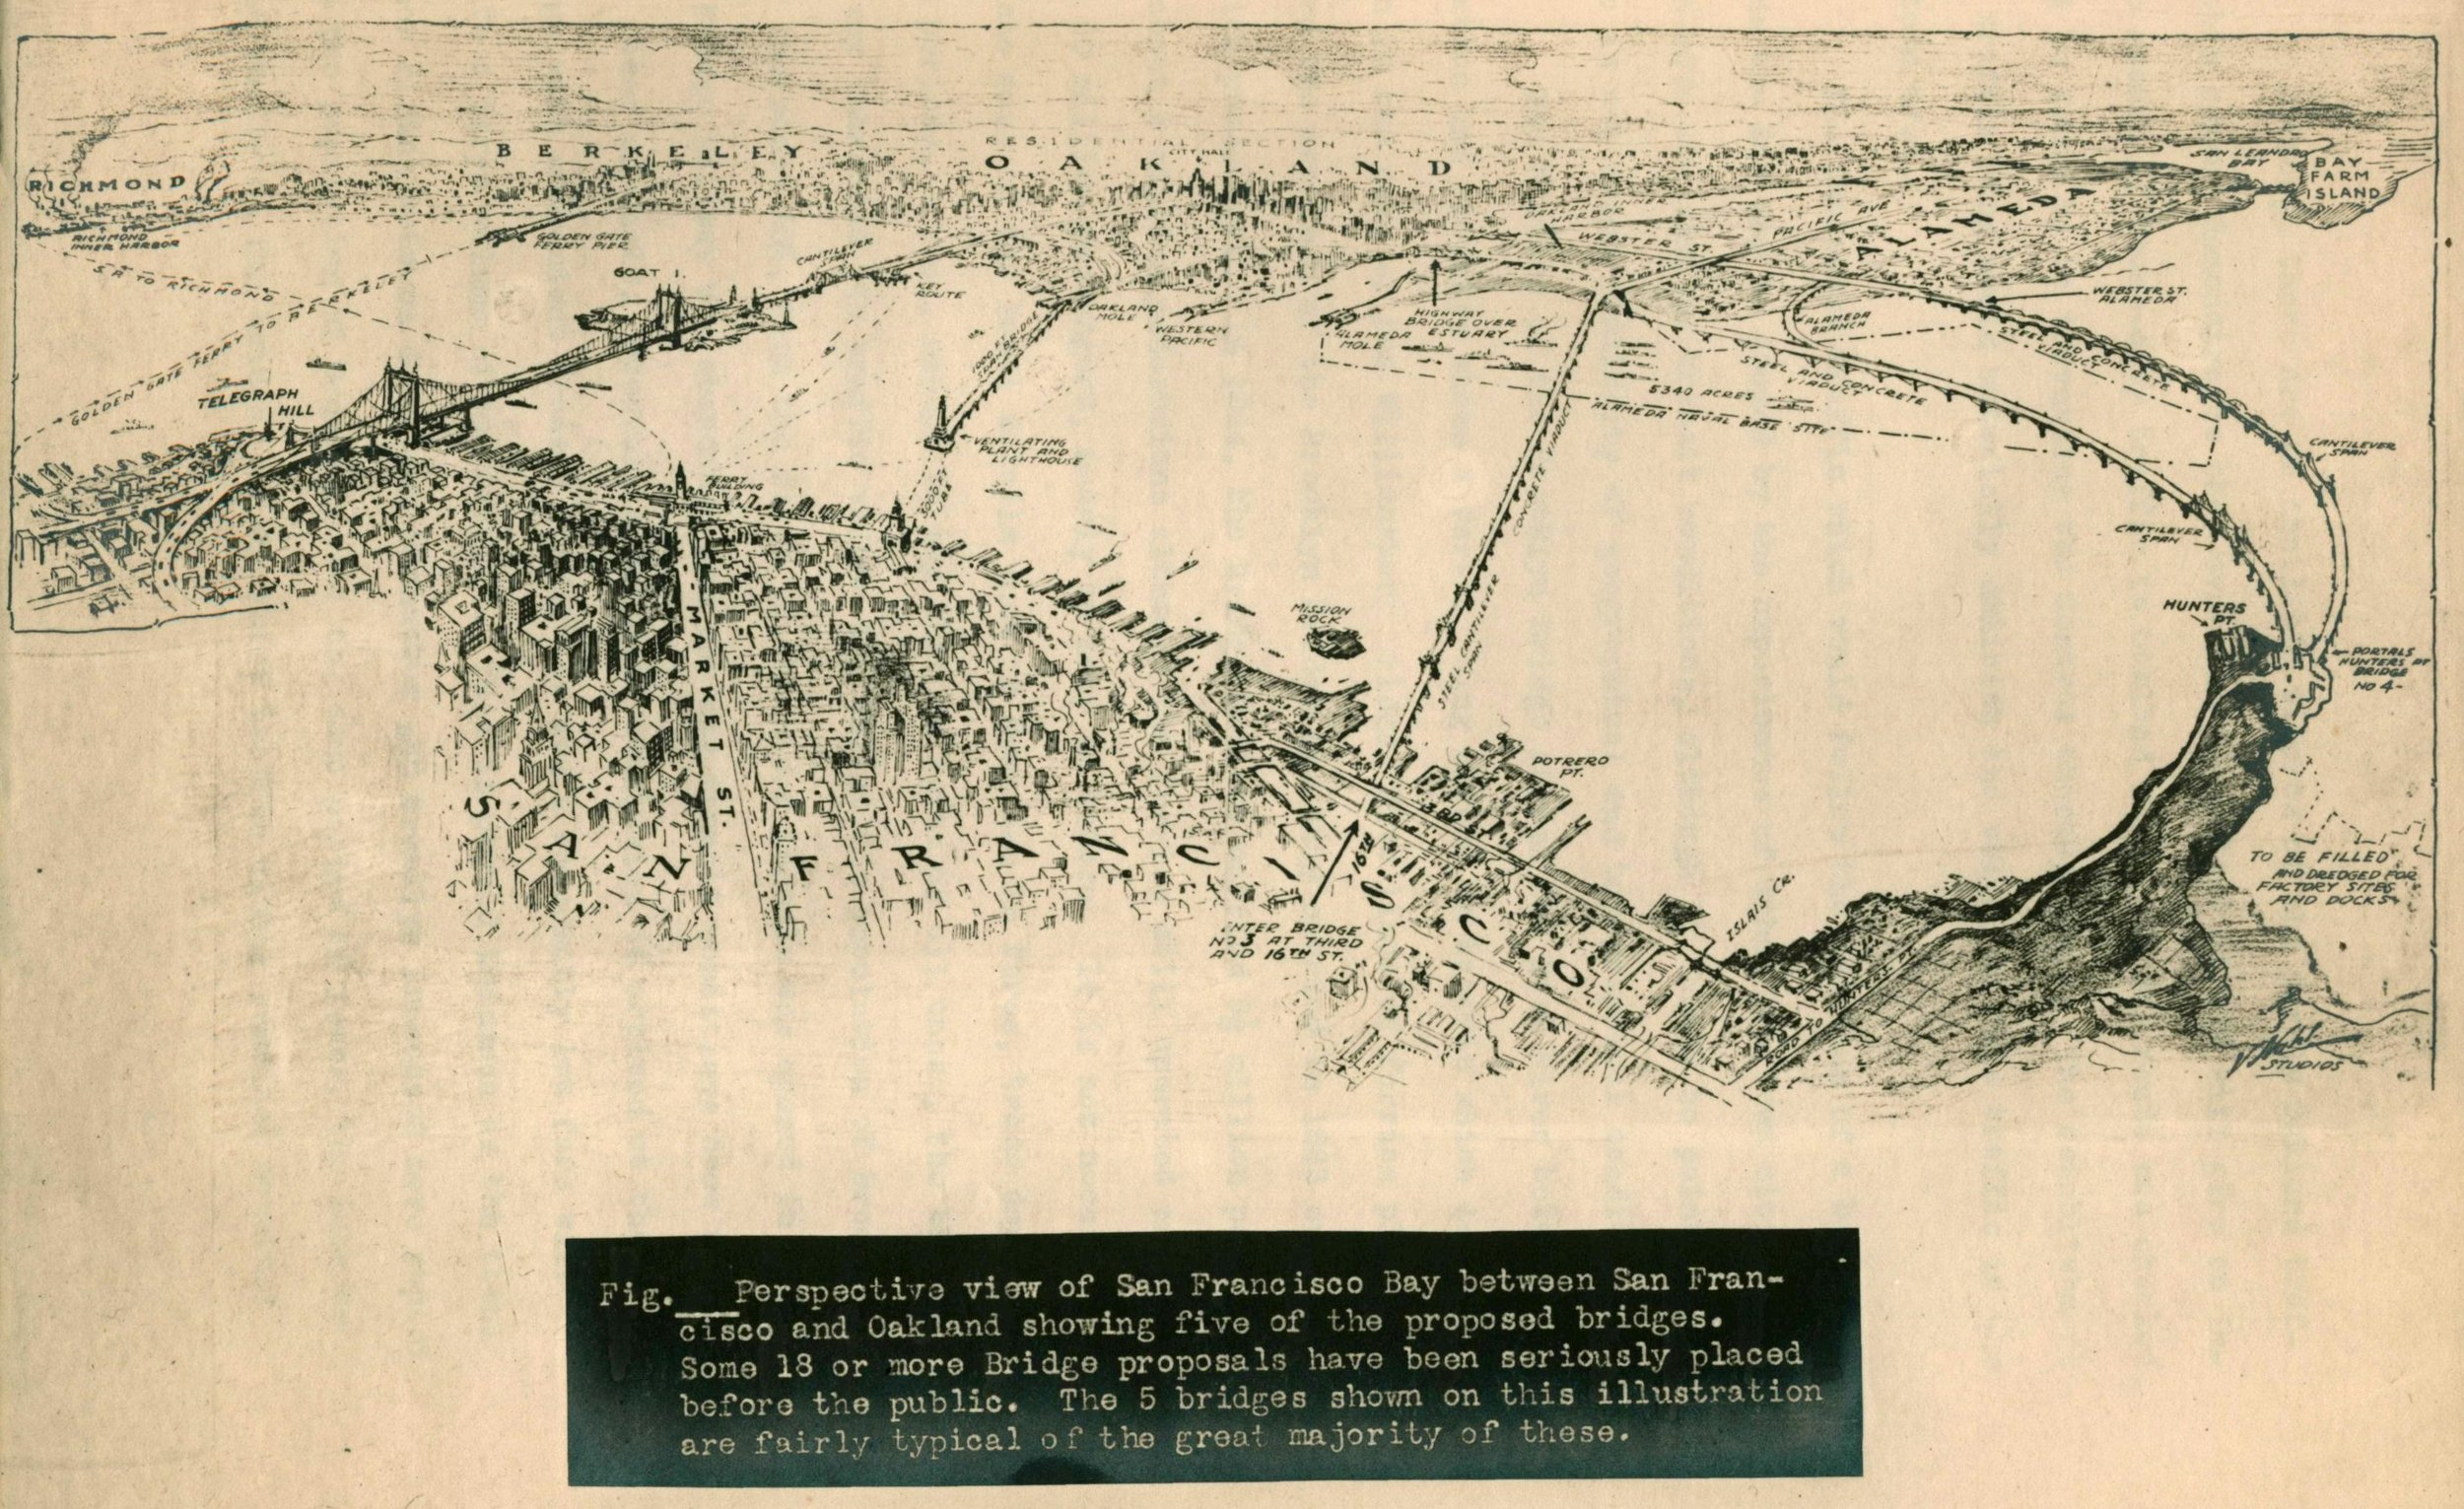 Perspective view of San Francisco Bay between San Francisco and Oakland showing five of the proposed bridges .  The Traffic Ring Boulevard: A factor in solving the traffic problem in Oakland  (1926). Source:  Eric Fischer .